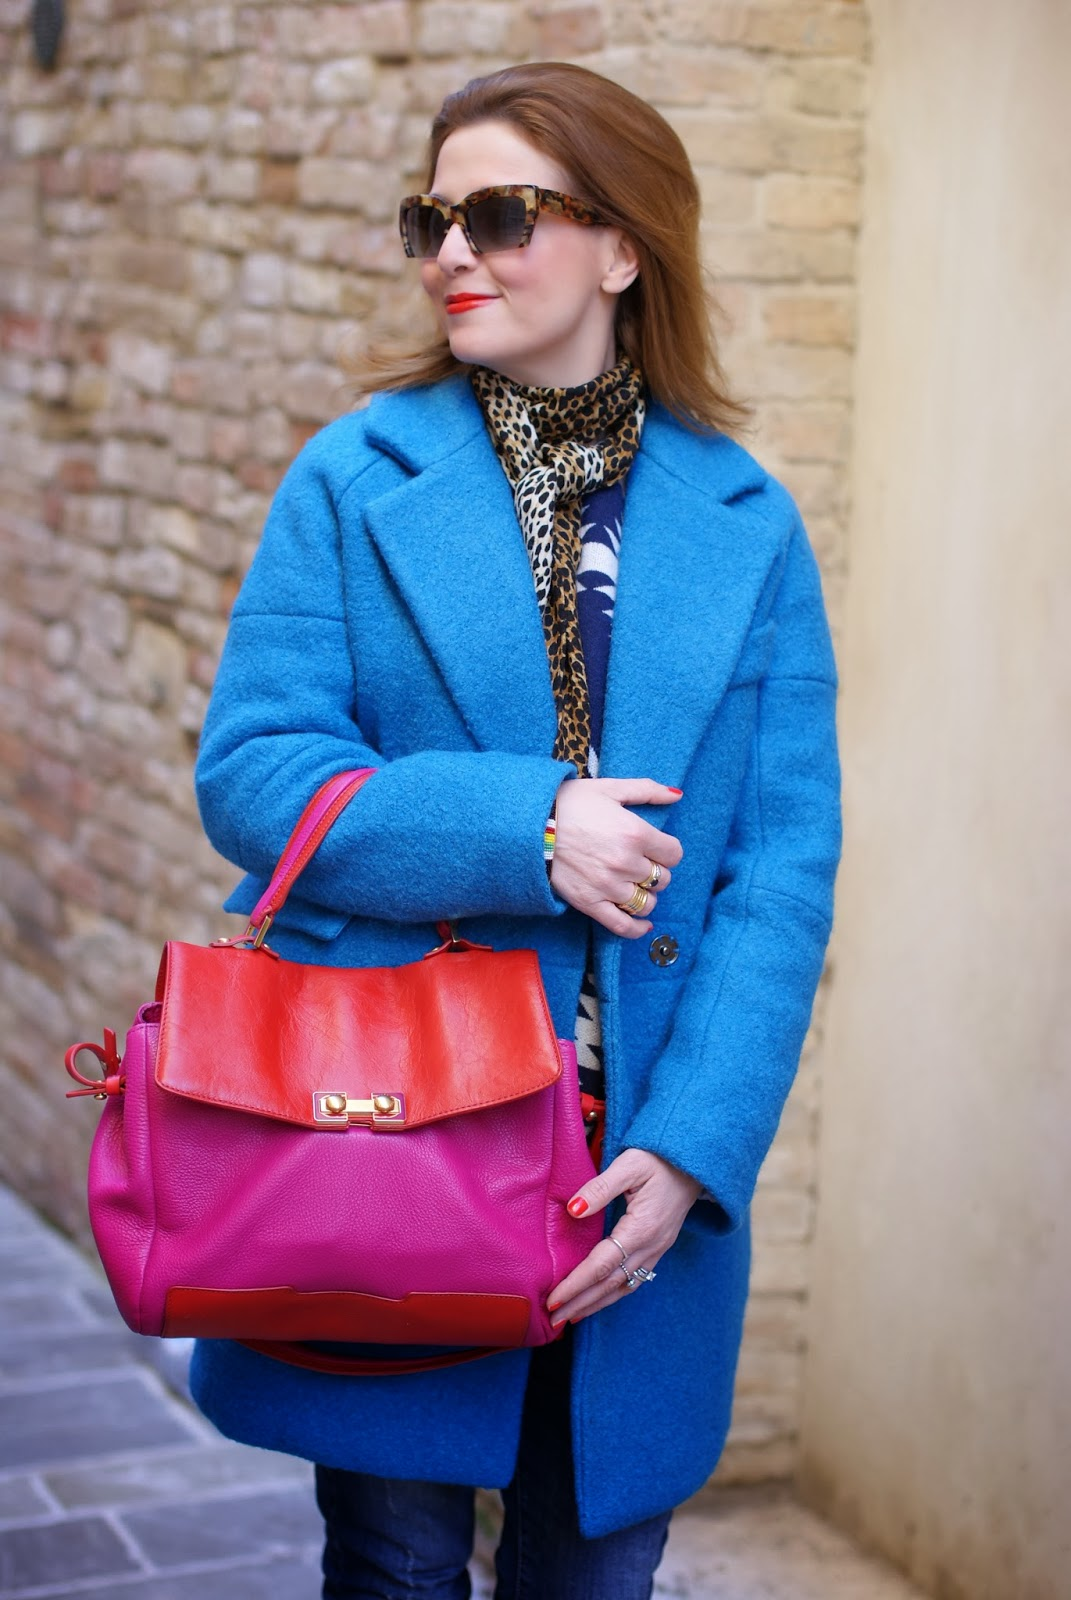 Miu Miu rasoir sunglasses, Dolce & Gabbana leopard scarf, Blue oversized coat, Marc by Marc Jacobs color block bag, Fashion and Cookies, fashion blogger